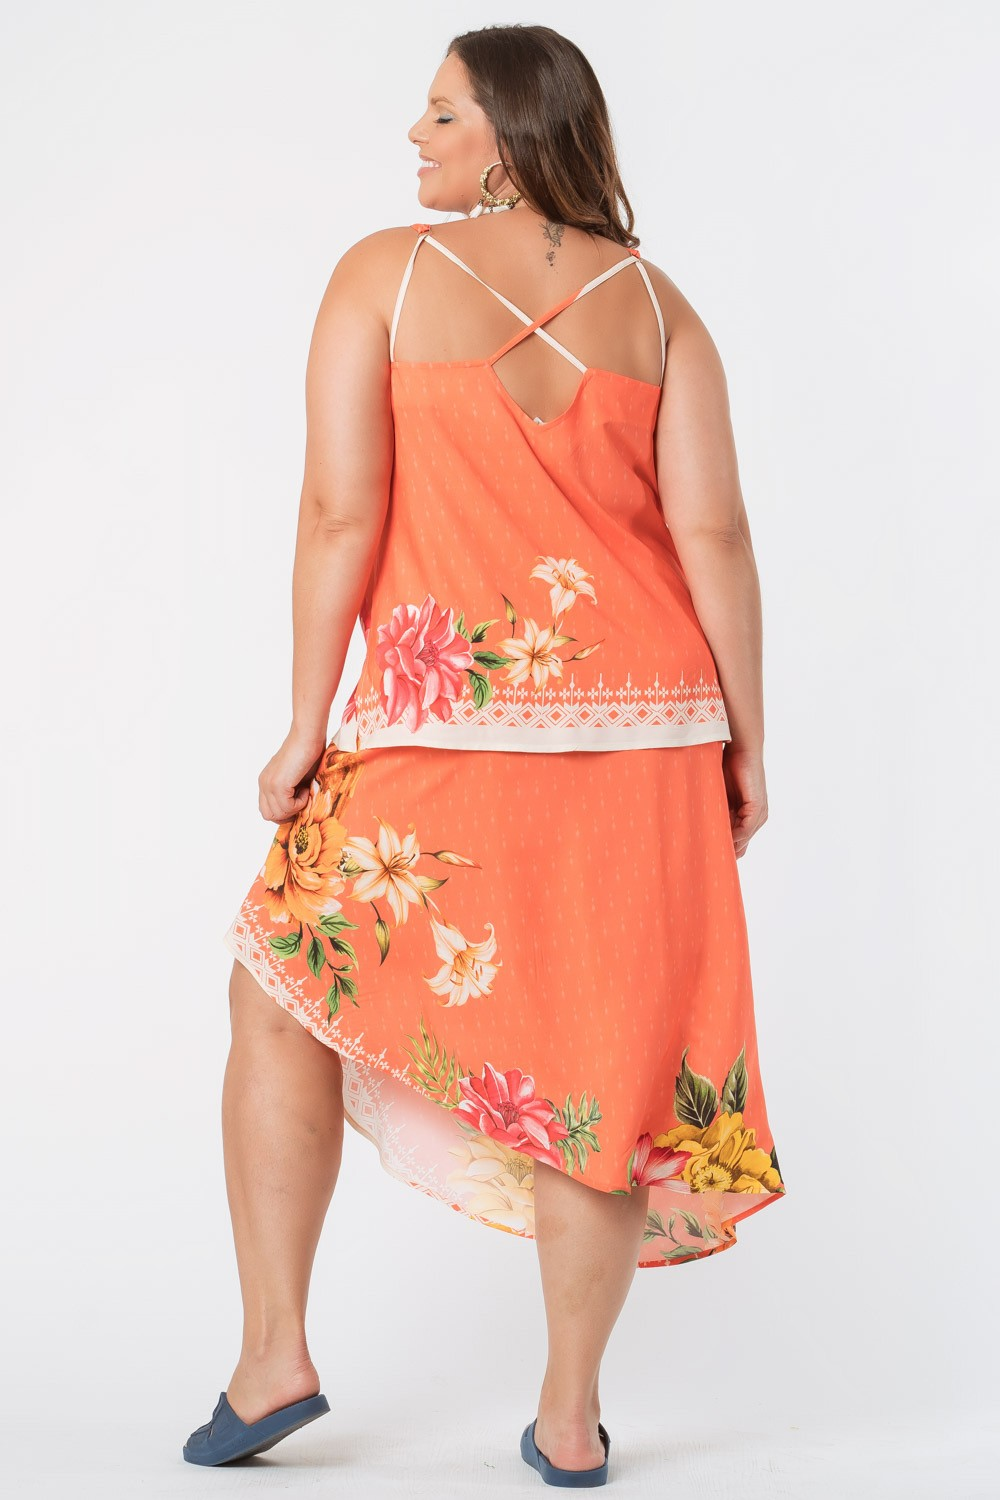 REGATA ESTAMPADA PLUS SIZE ARARA CORAL